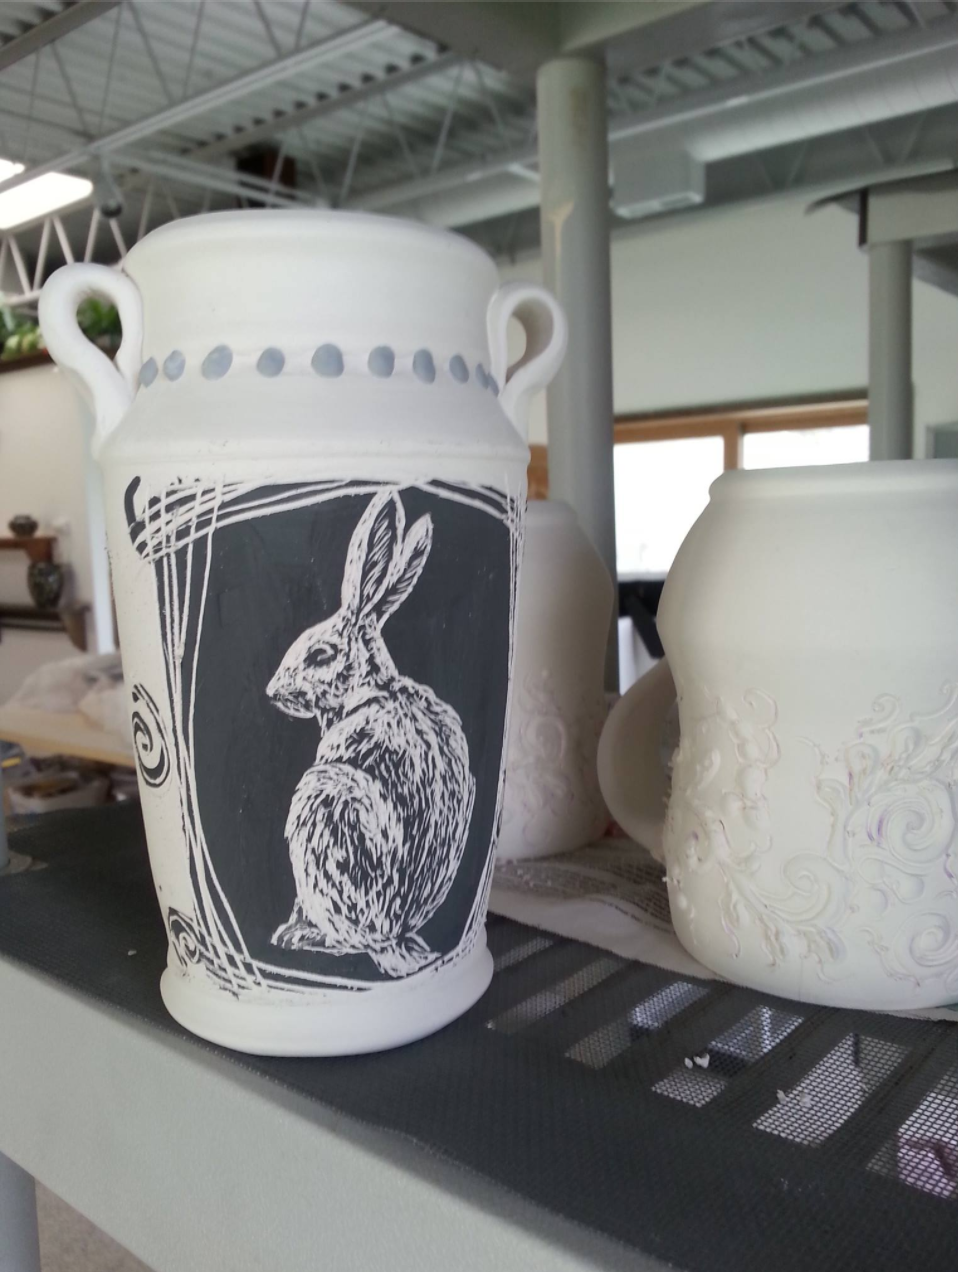 stone forest pottery process sgraffito mug